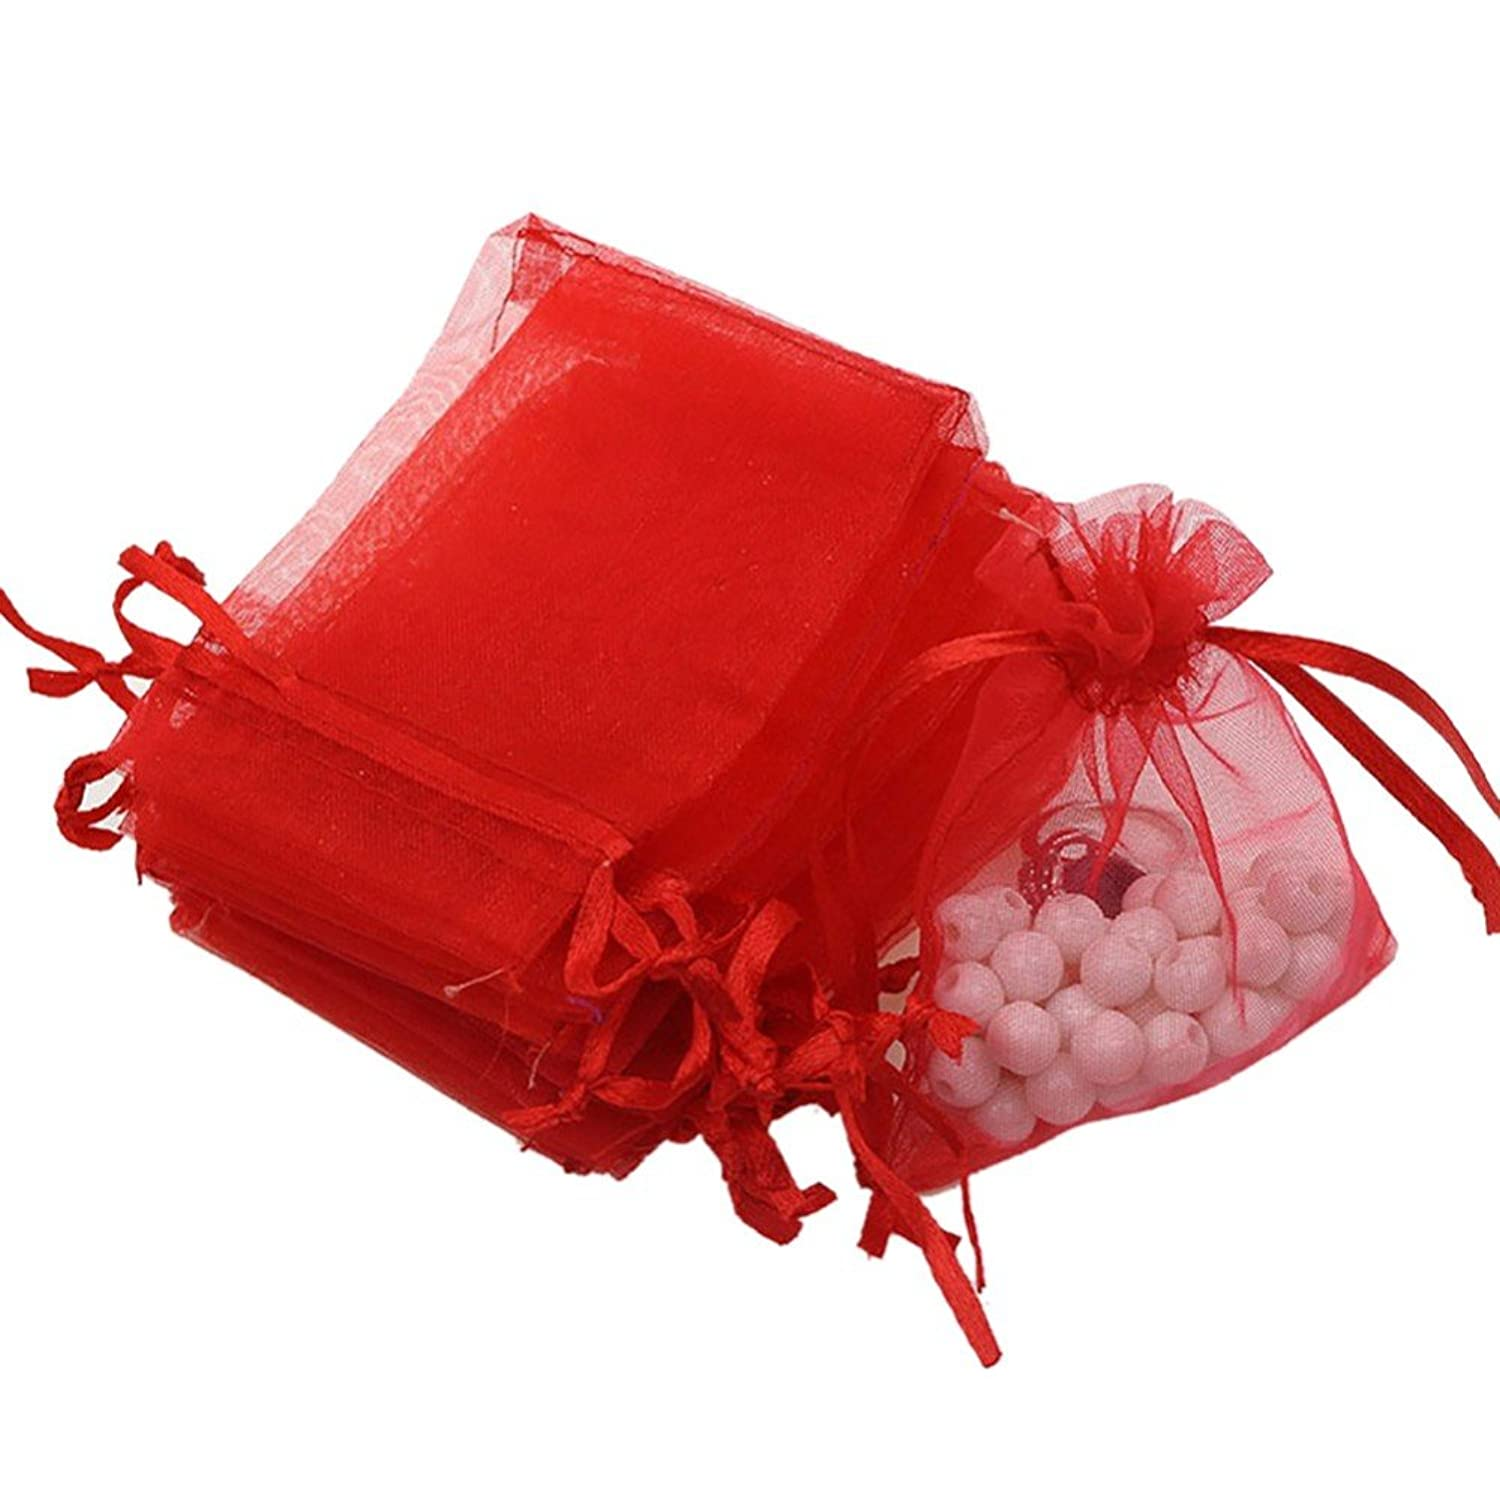 Dealglad 50pcs Drawstring Organza Jewelry Candy Pouch Christmas Wedding Party Favor Gift Bags (5x7